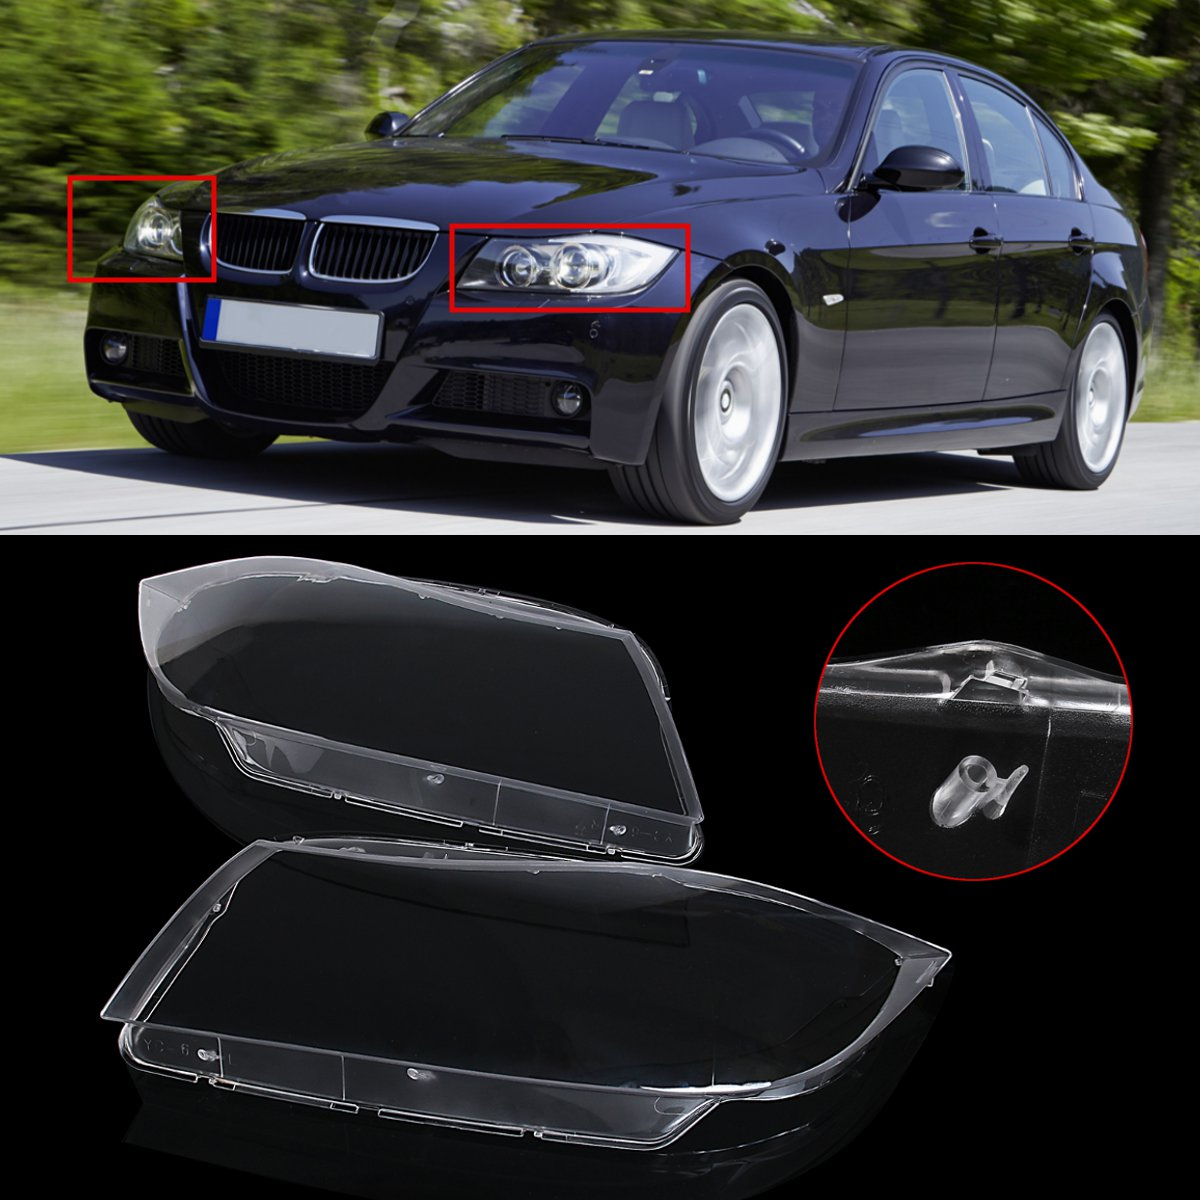 Brand new Left/Right Clear Headlight Headlamp Lens Cover for BMW 3 Series E90 2006 2007 2008 2009 2010 2011 2012